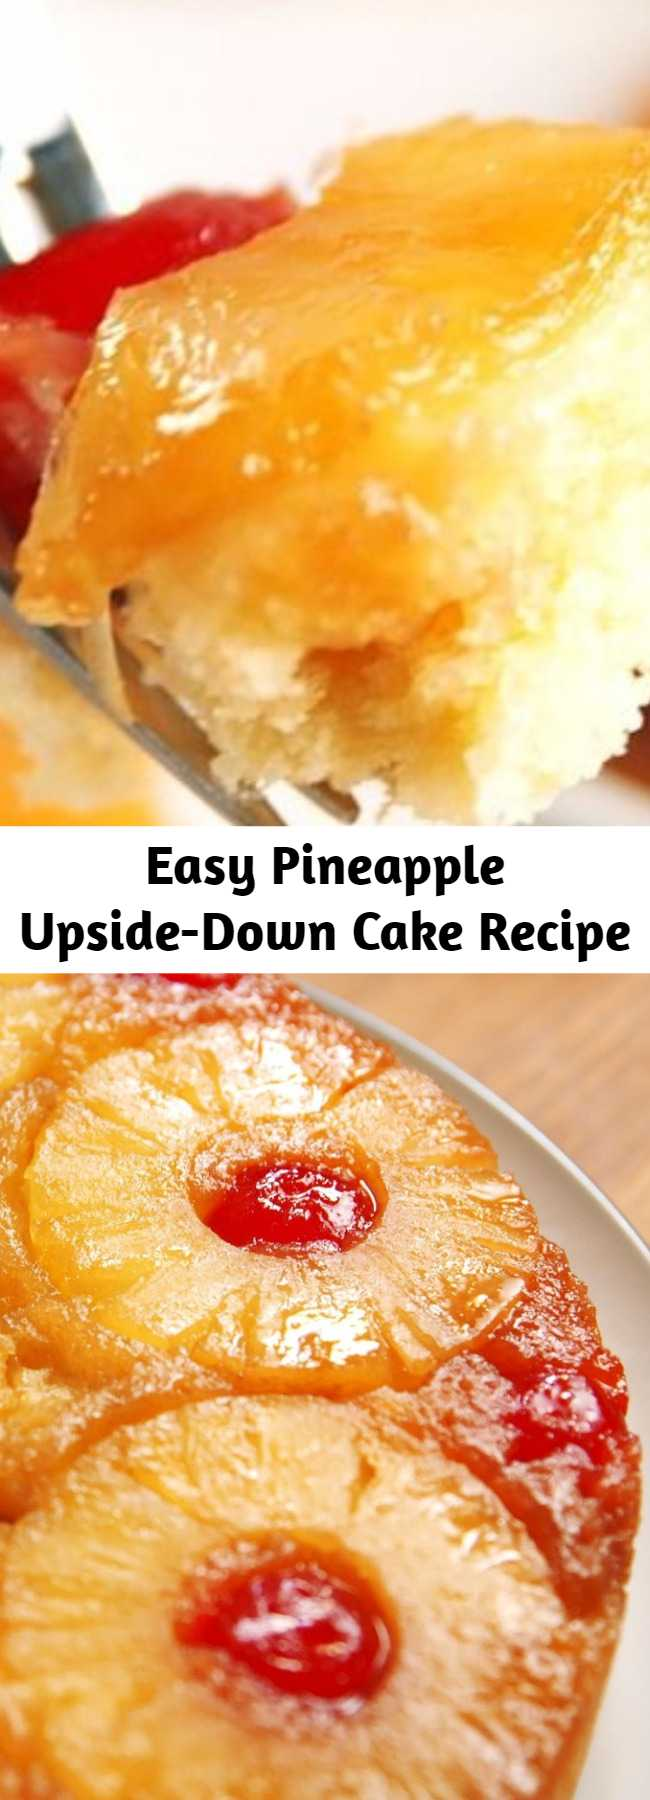 Easy Pineapple Upside-Down Cake Recipe - This pineapple upside-down cake will remind you why it's a classic.